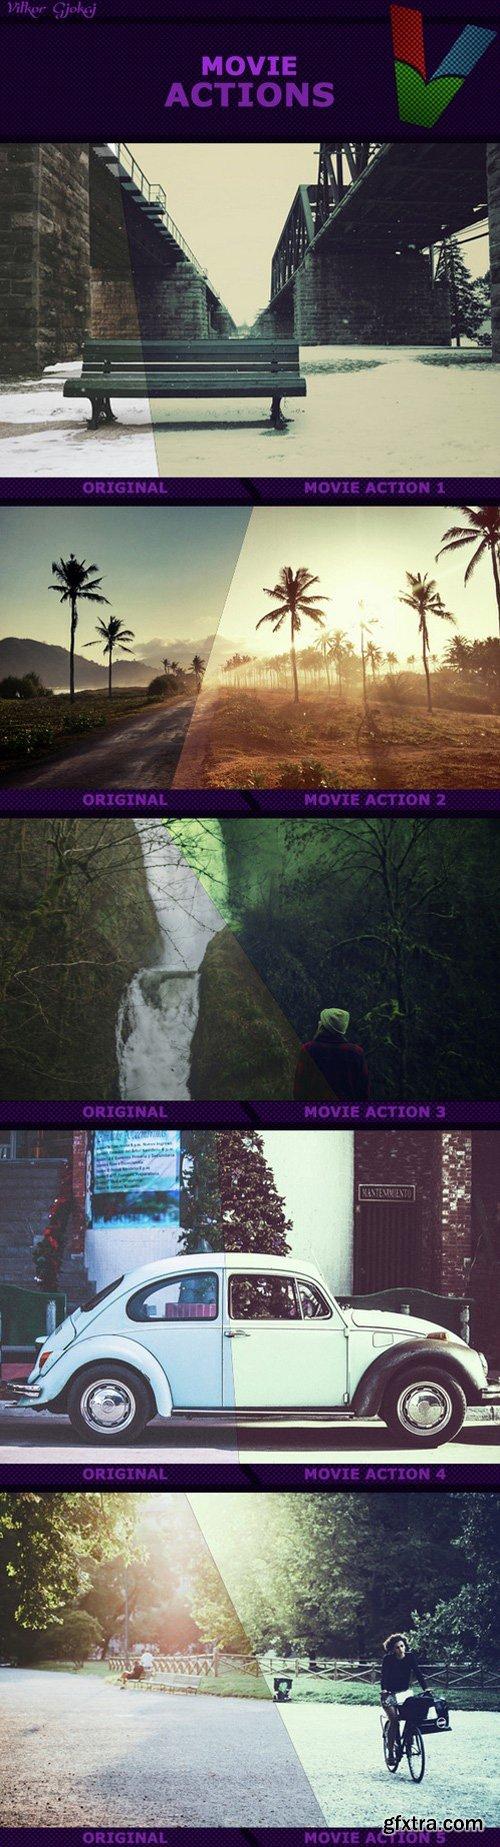 Graphicriver - Movie Actions I 14528843